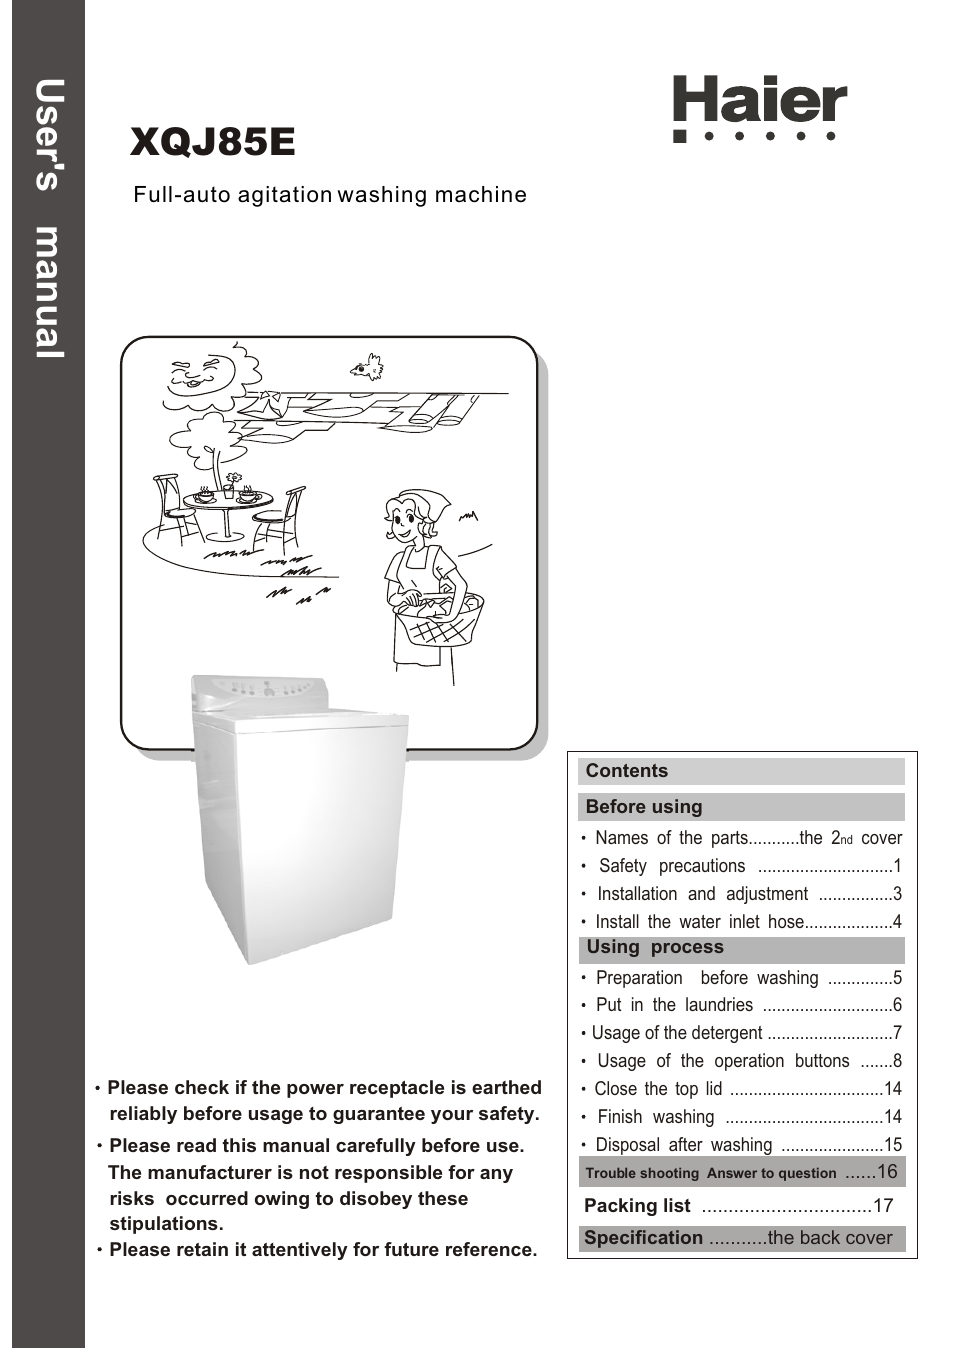 Haier Washing Machine Wiring Diagram Xqj85e User Manual 20 Pages Also For Full Auto Agitation